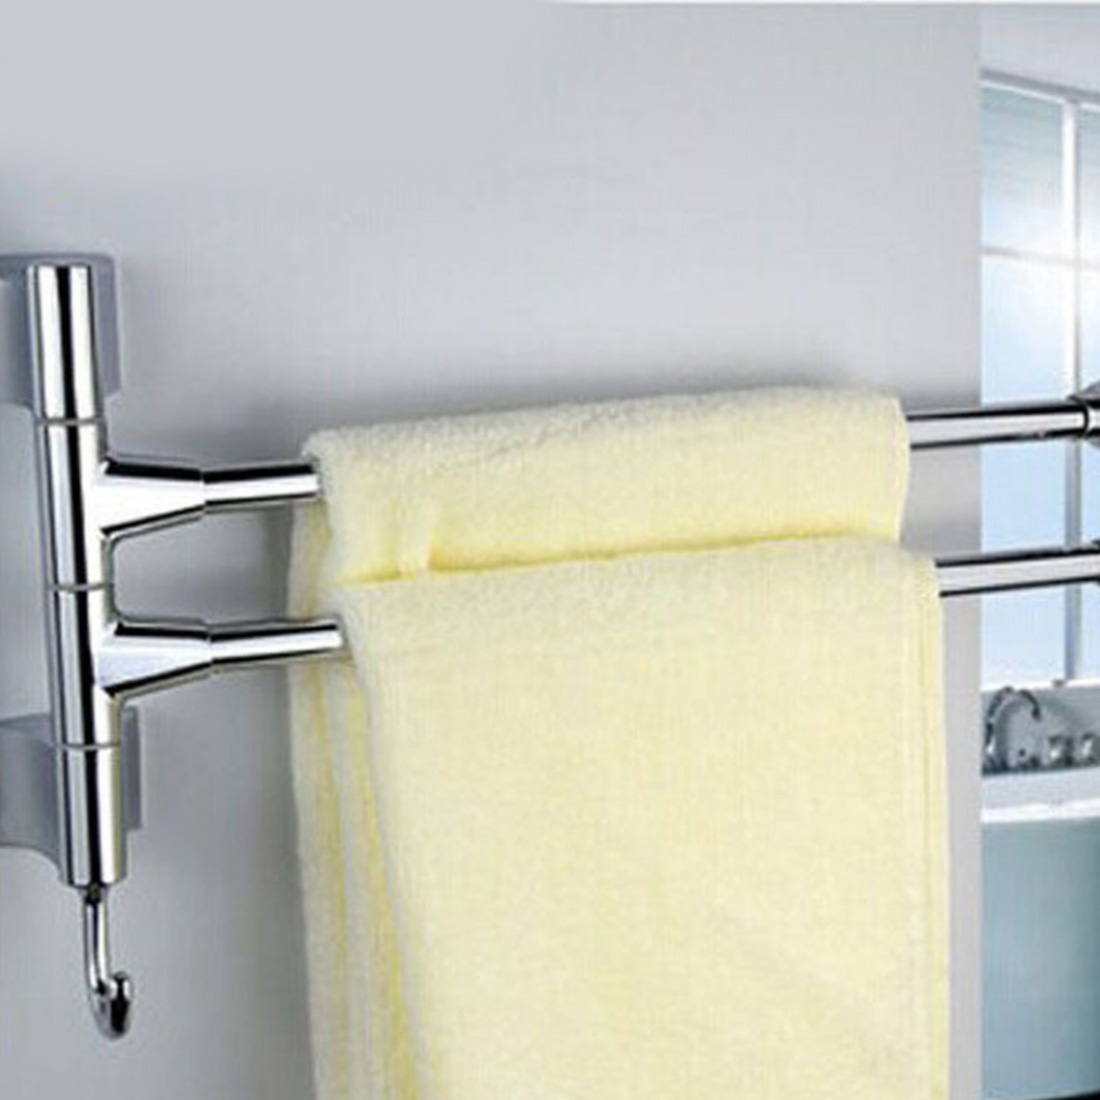 Bathroom Kitchen Towel Polished Rack Holder Hardware Accessor Stainless Steel 2/3/4 Layers Shower Towel Bar Rotating Towel Rack